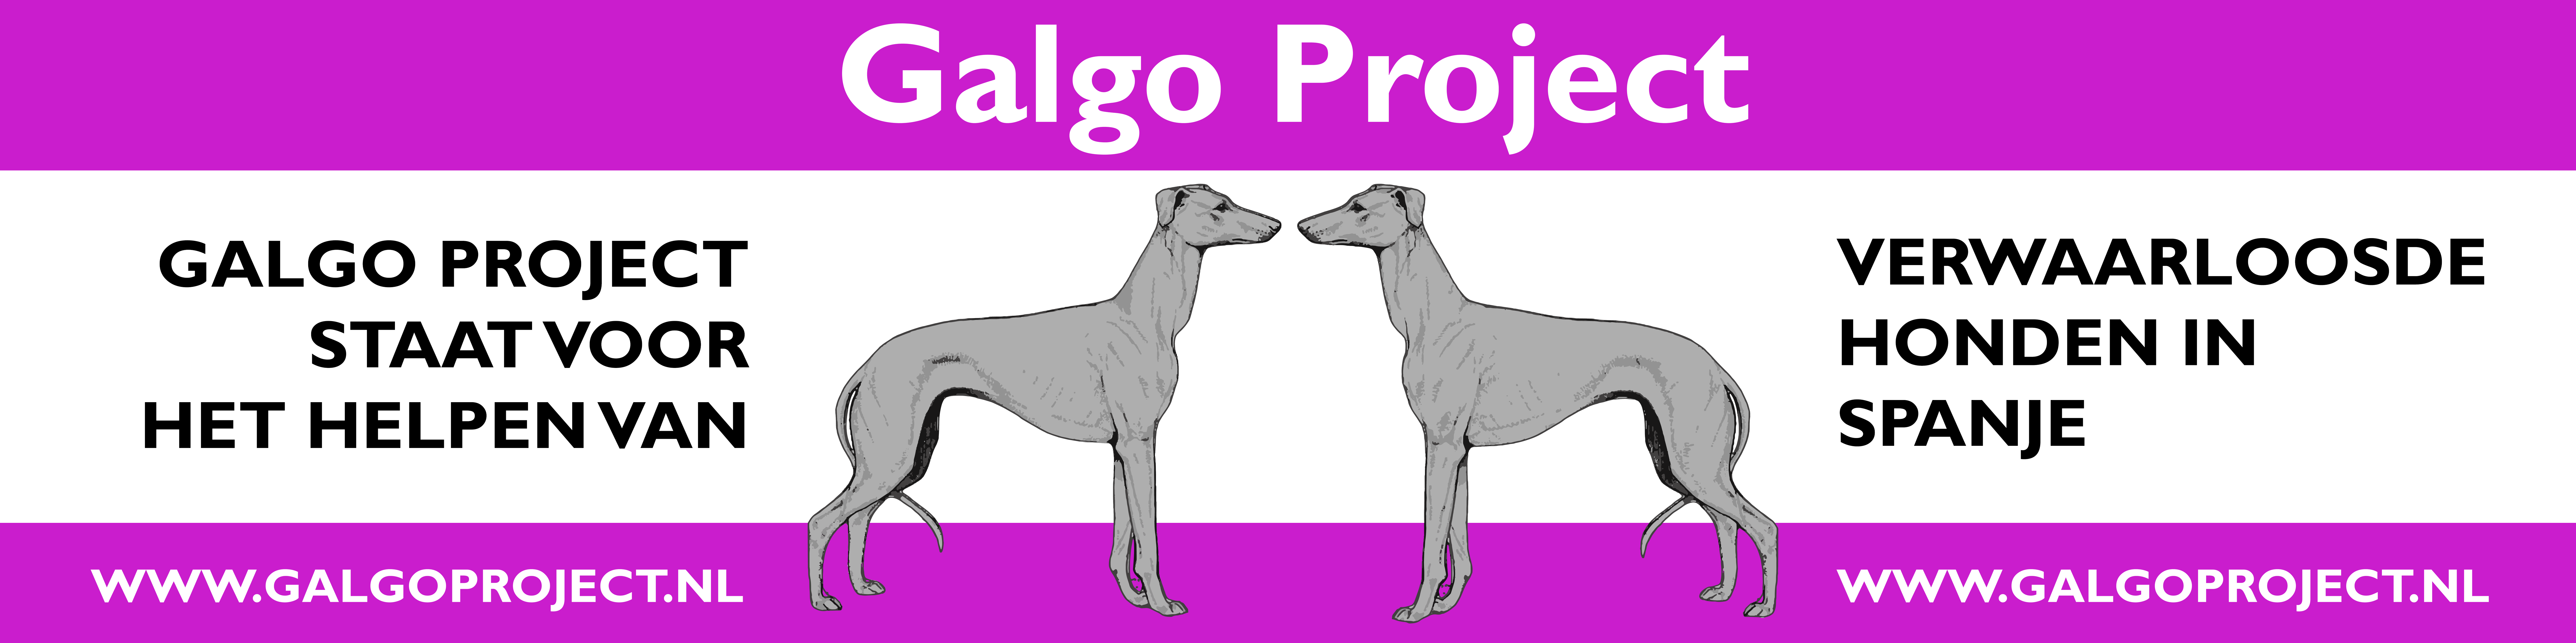 Bord Galgo Project 2-01